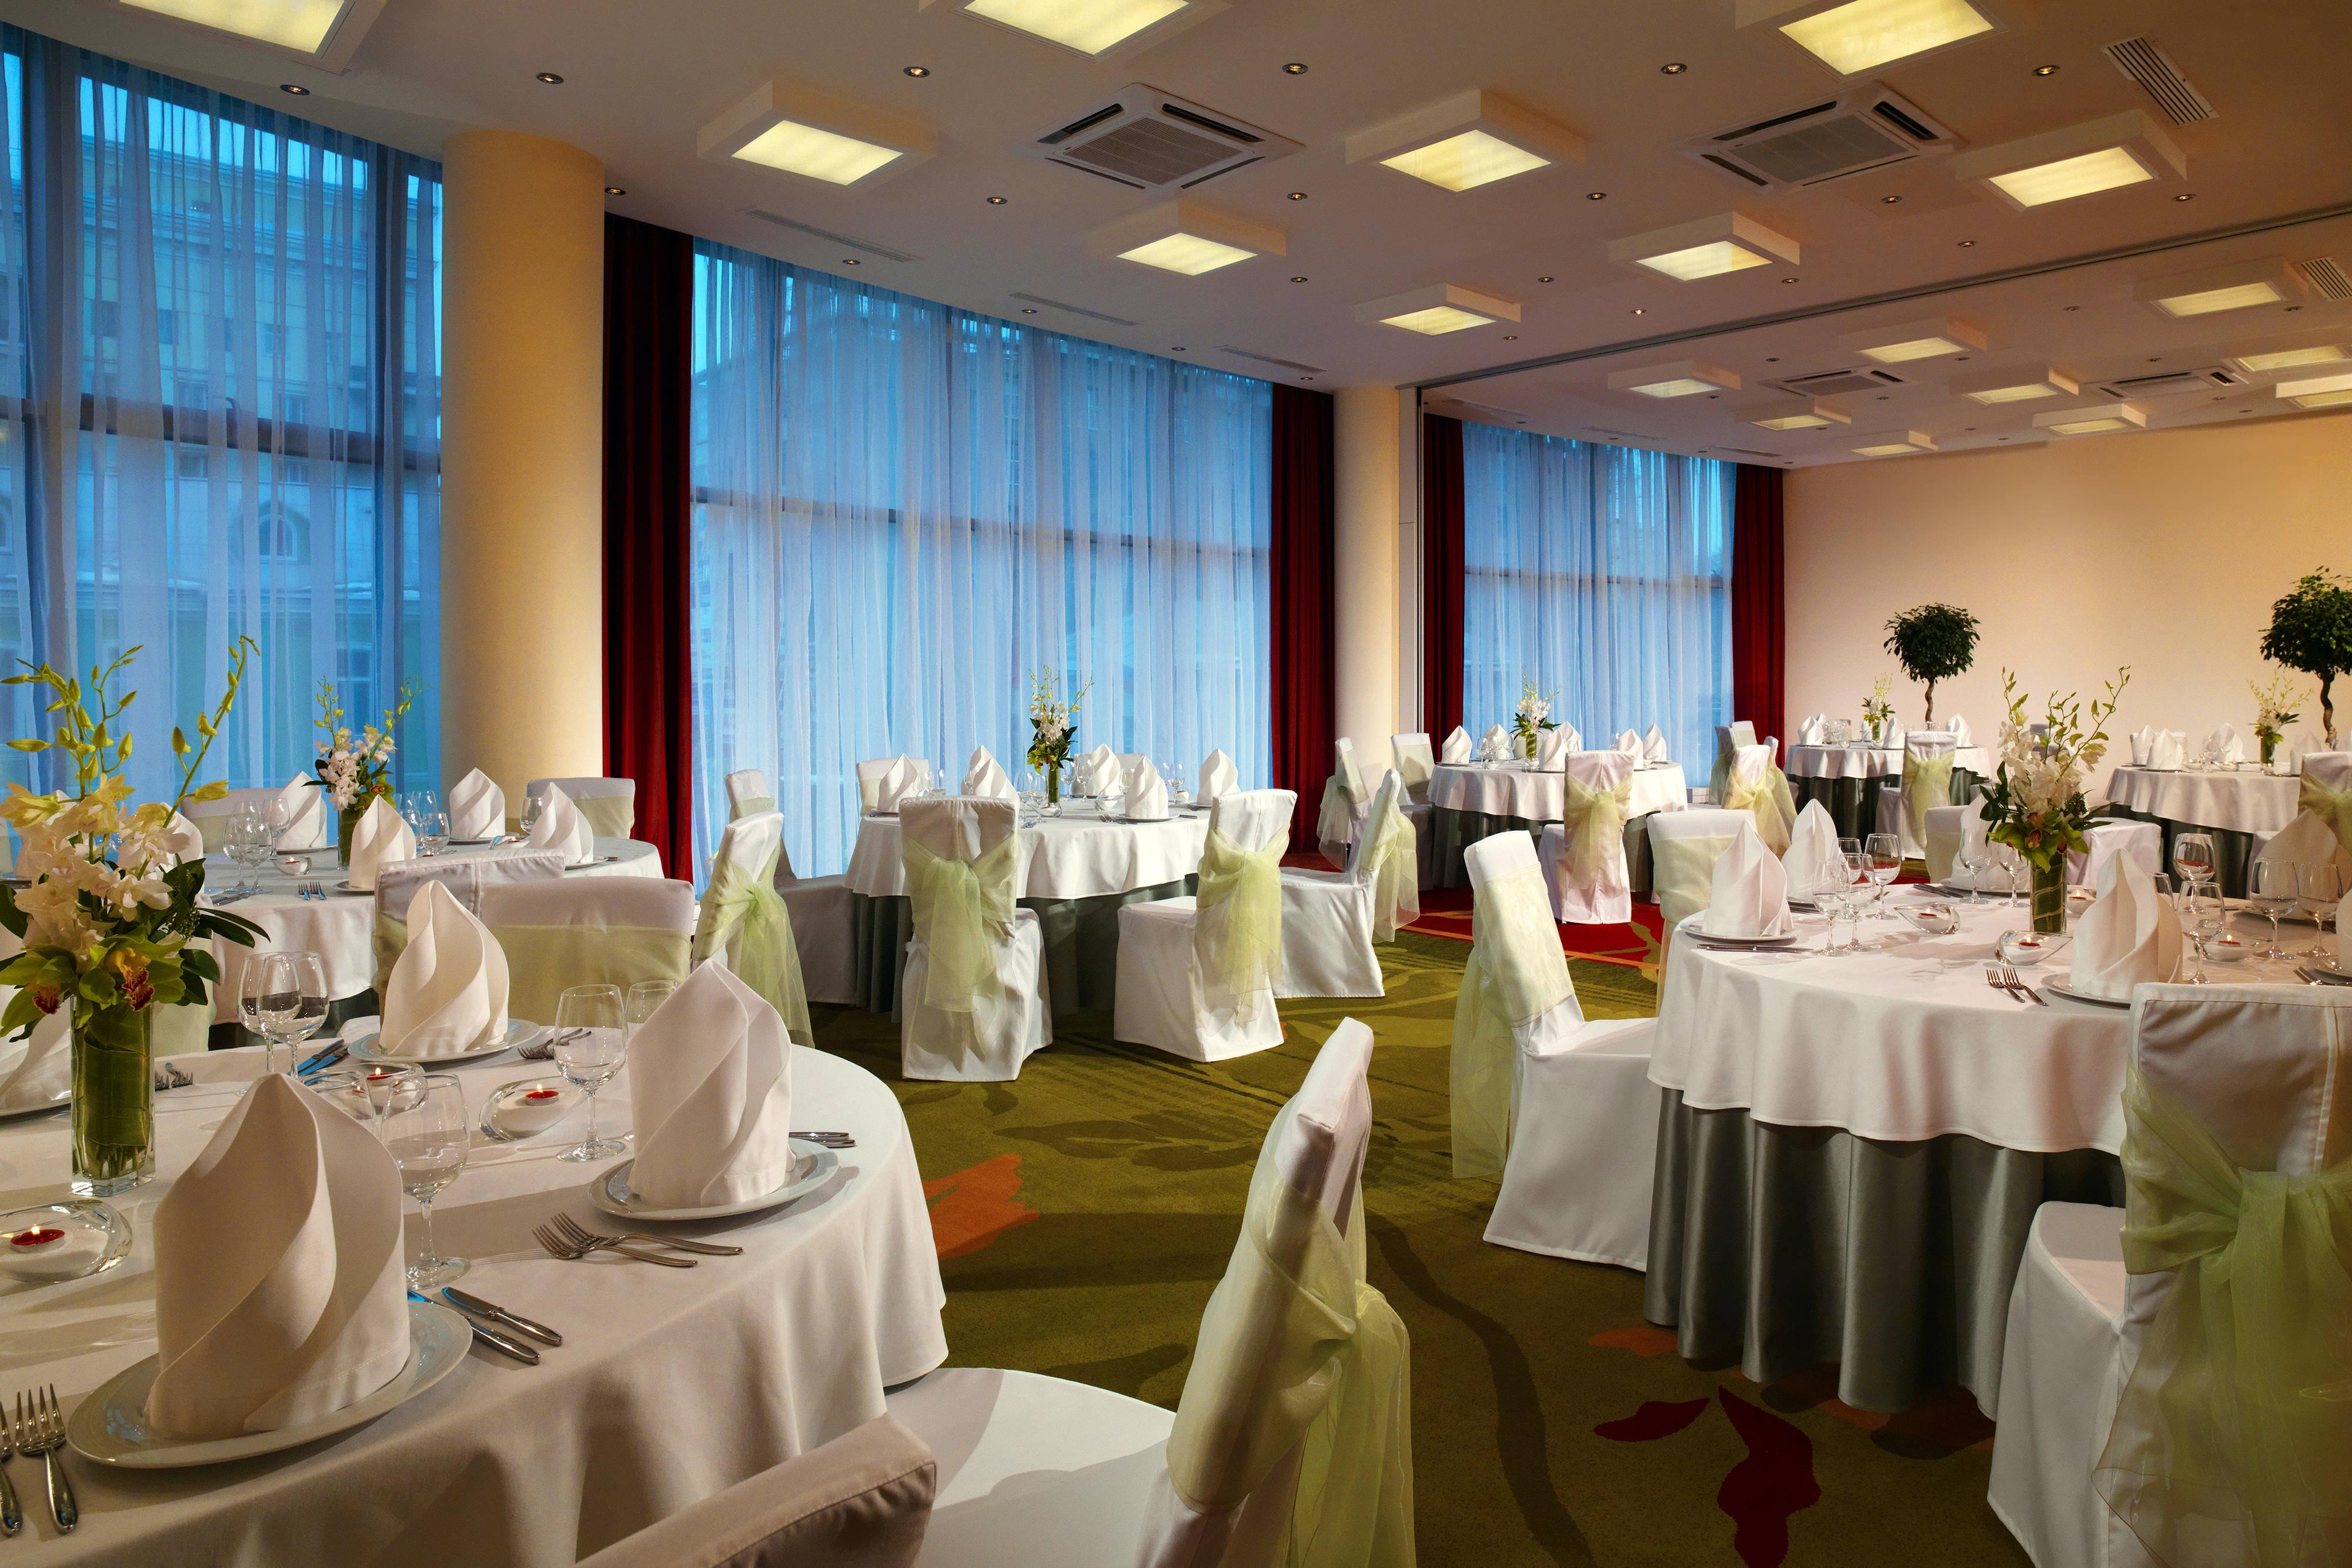 Moscow hotel event space